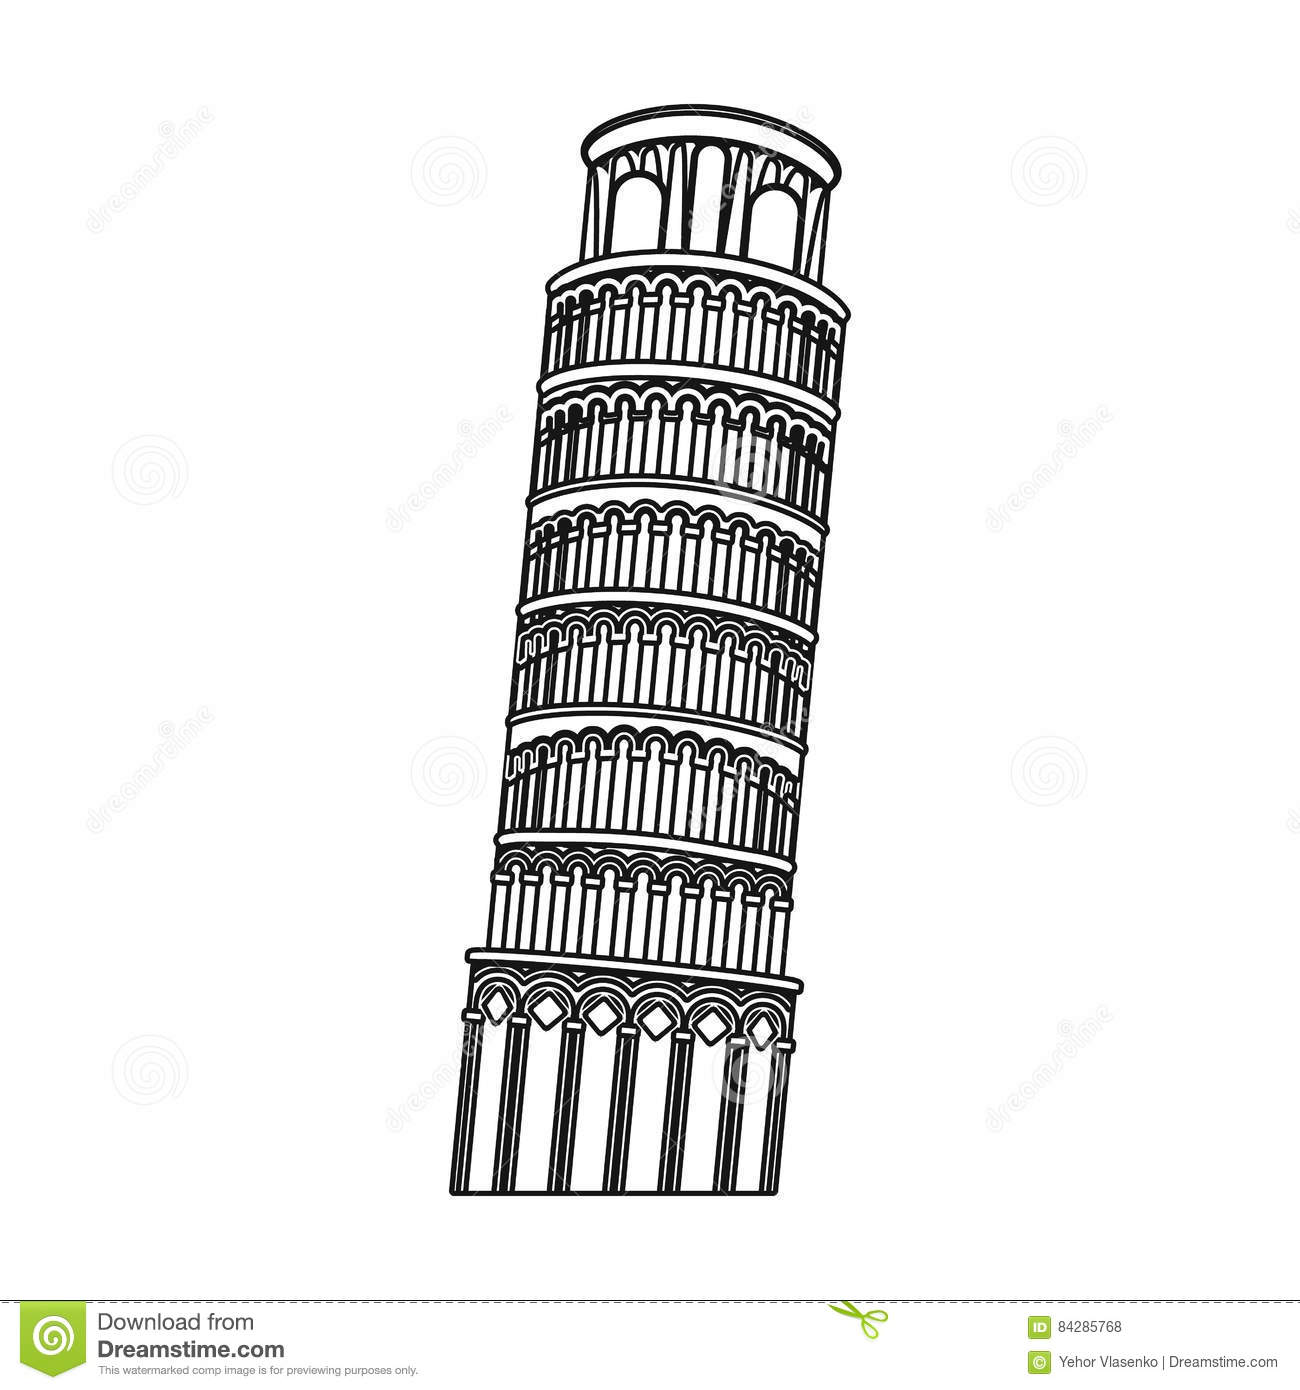 Tower Of Pisa In Italy Icon In Outline Style Isolated On